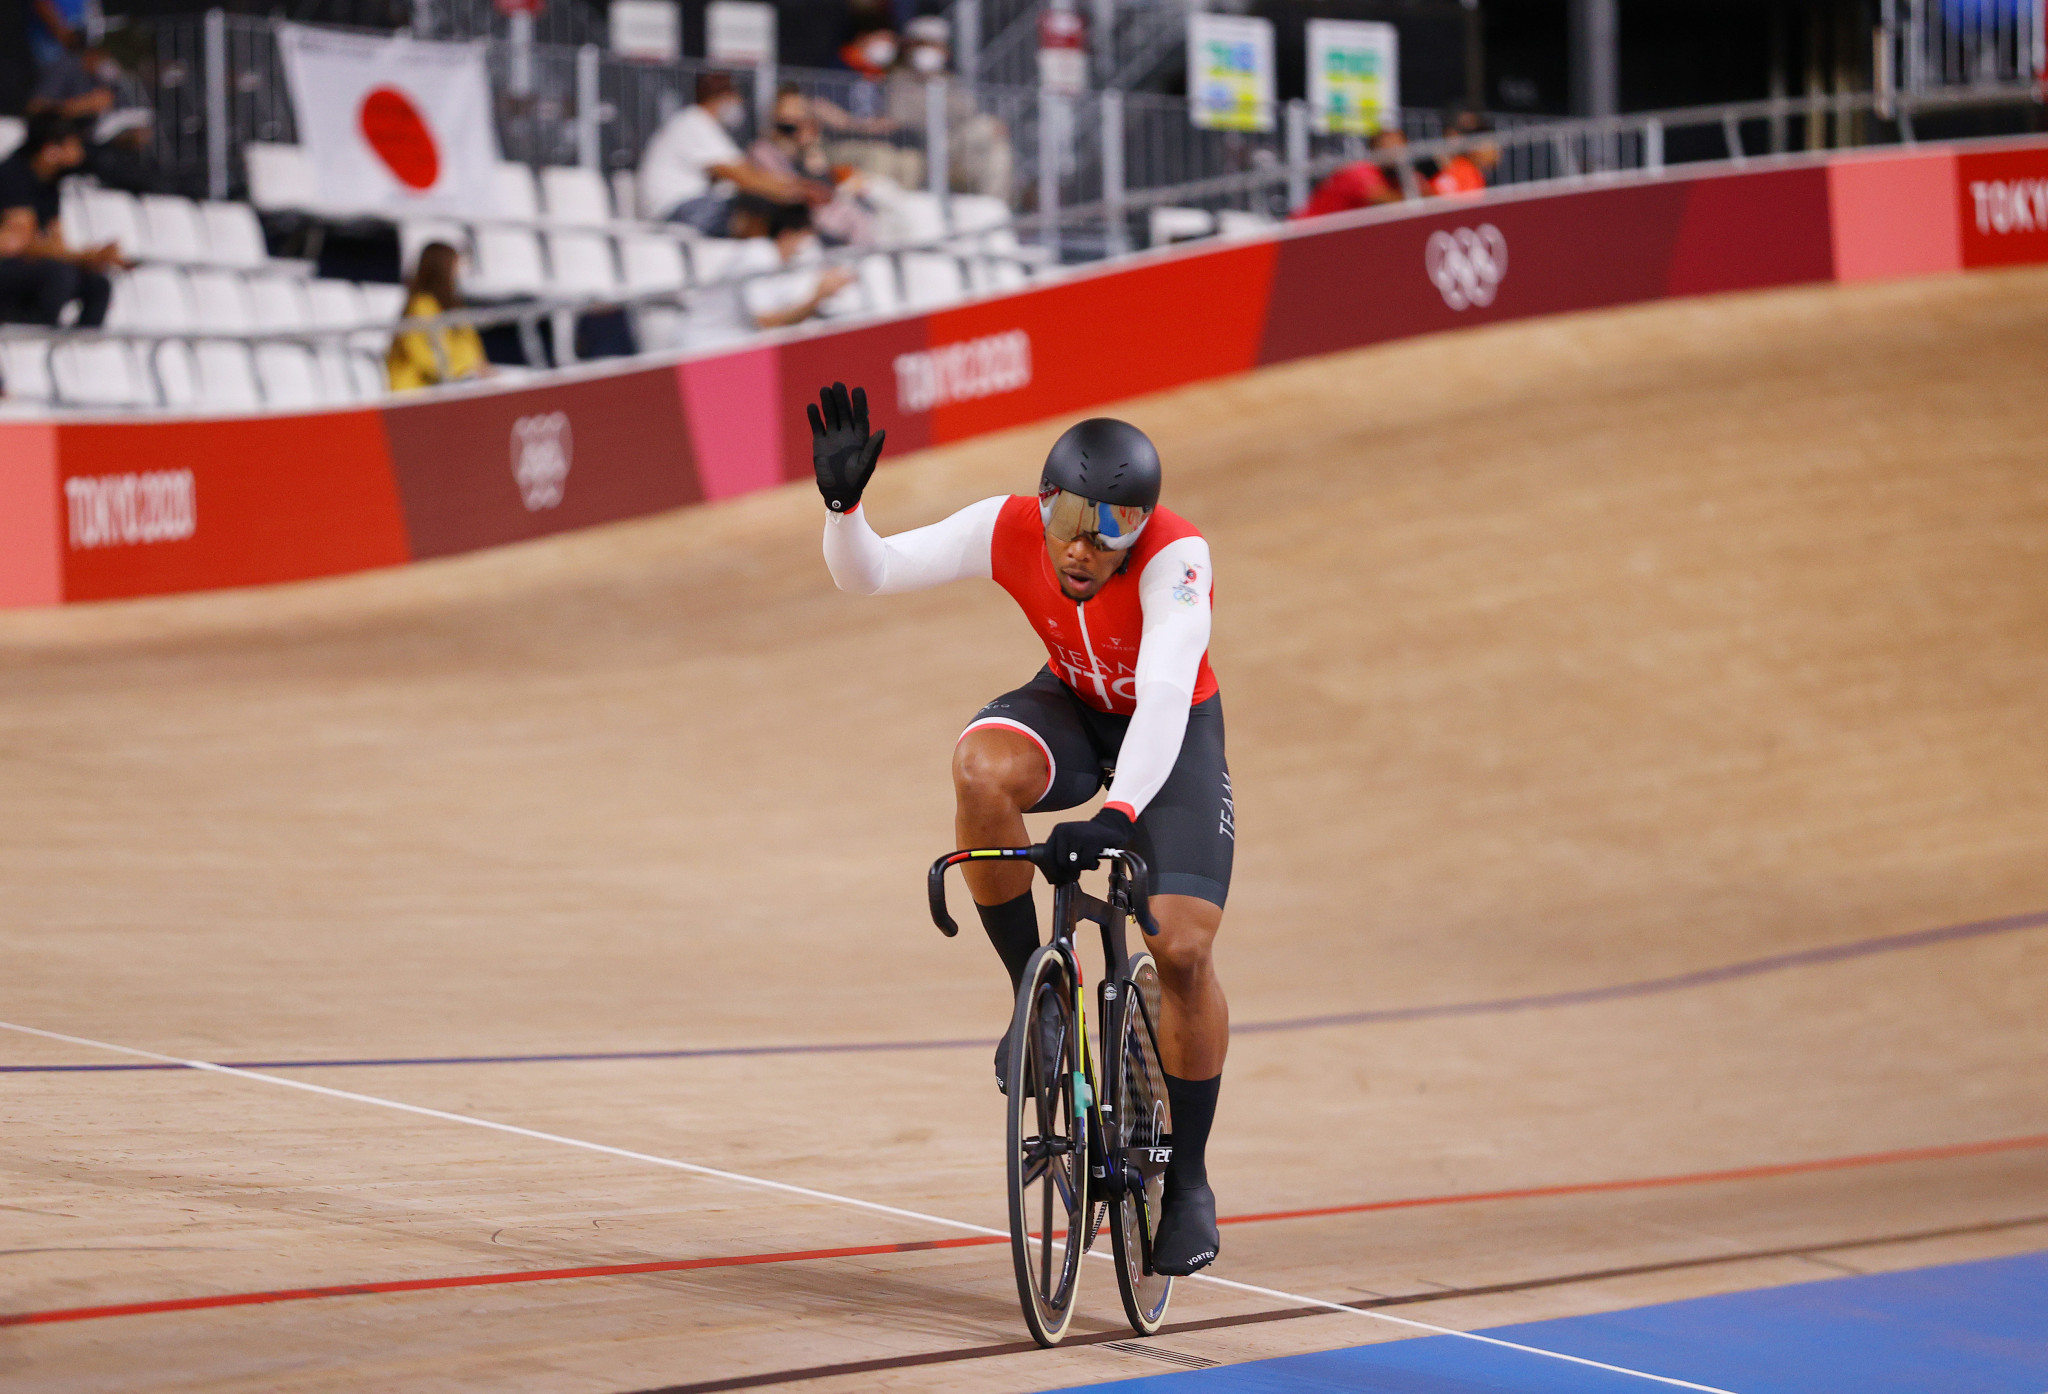 Paul and Campbell earn golds for Trinidad and Tobago at UCI Track Cycling Nations Cup in Cali